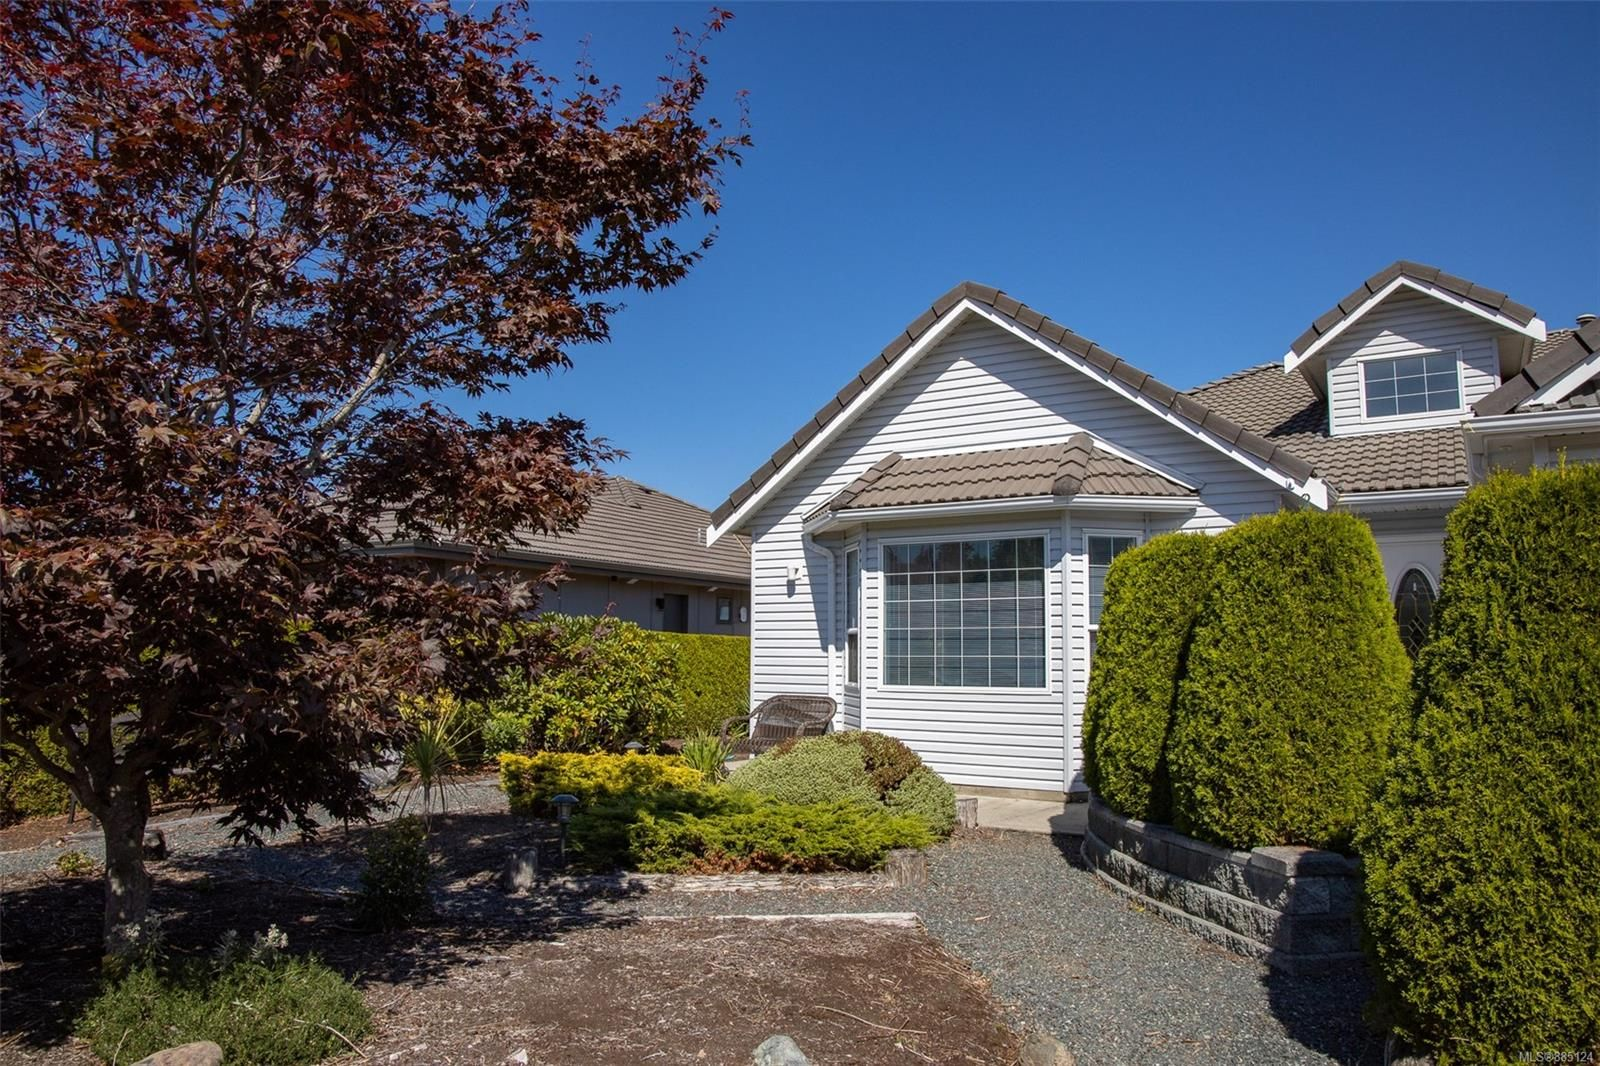 Photo 27: Photos: 1705 Admiral Tryon Blvd in : PQ French Creek House for sale (Parksville/Qualicum)  : MLS®# 885124